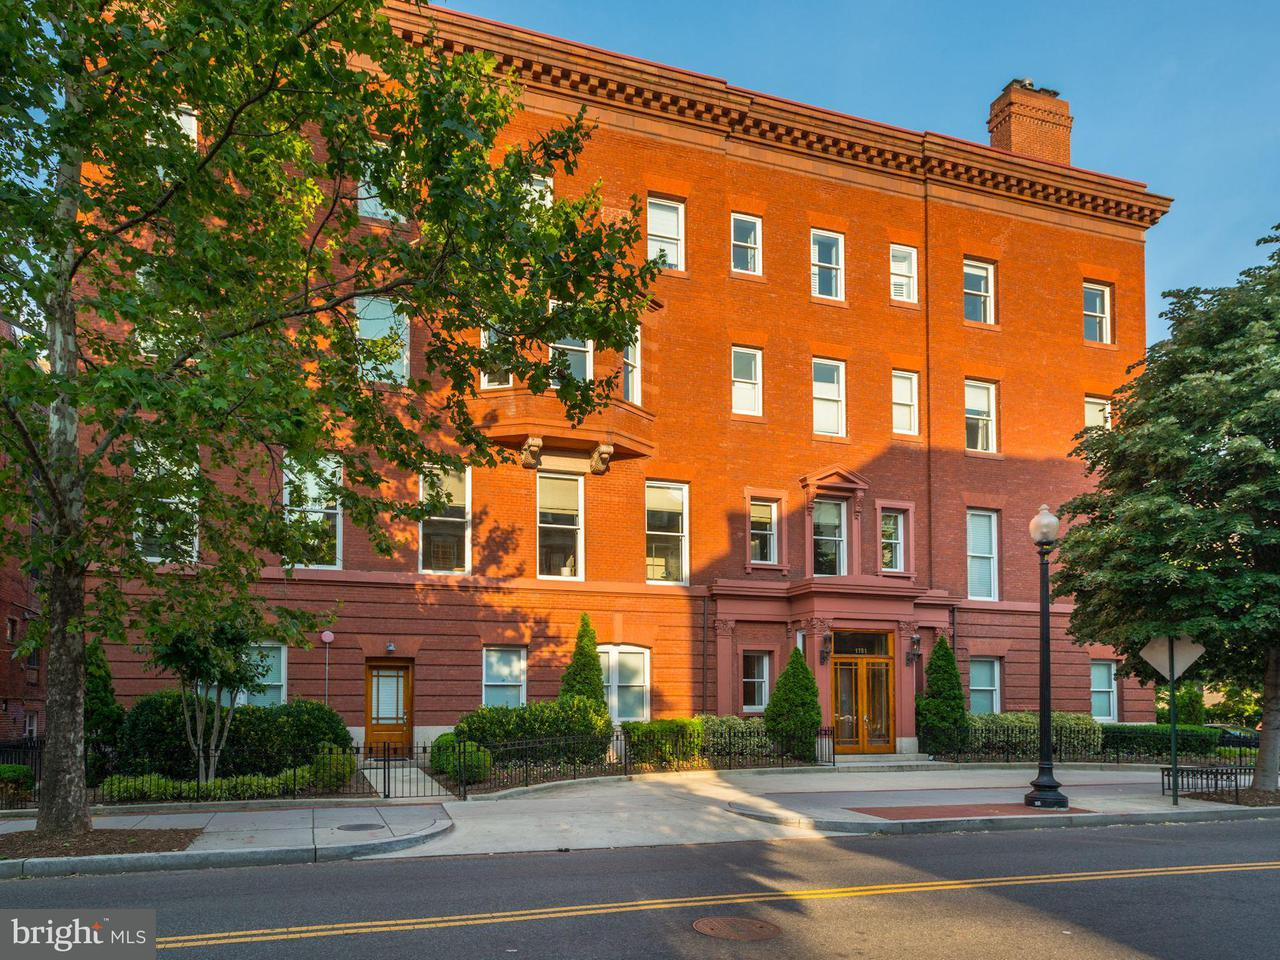 Condominium for Sale at 1701 18th St Nw #401 1701 18th St Nw #401 Washington, District Of Columbia 20009 United States